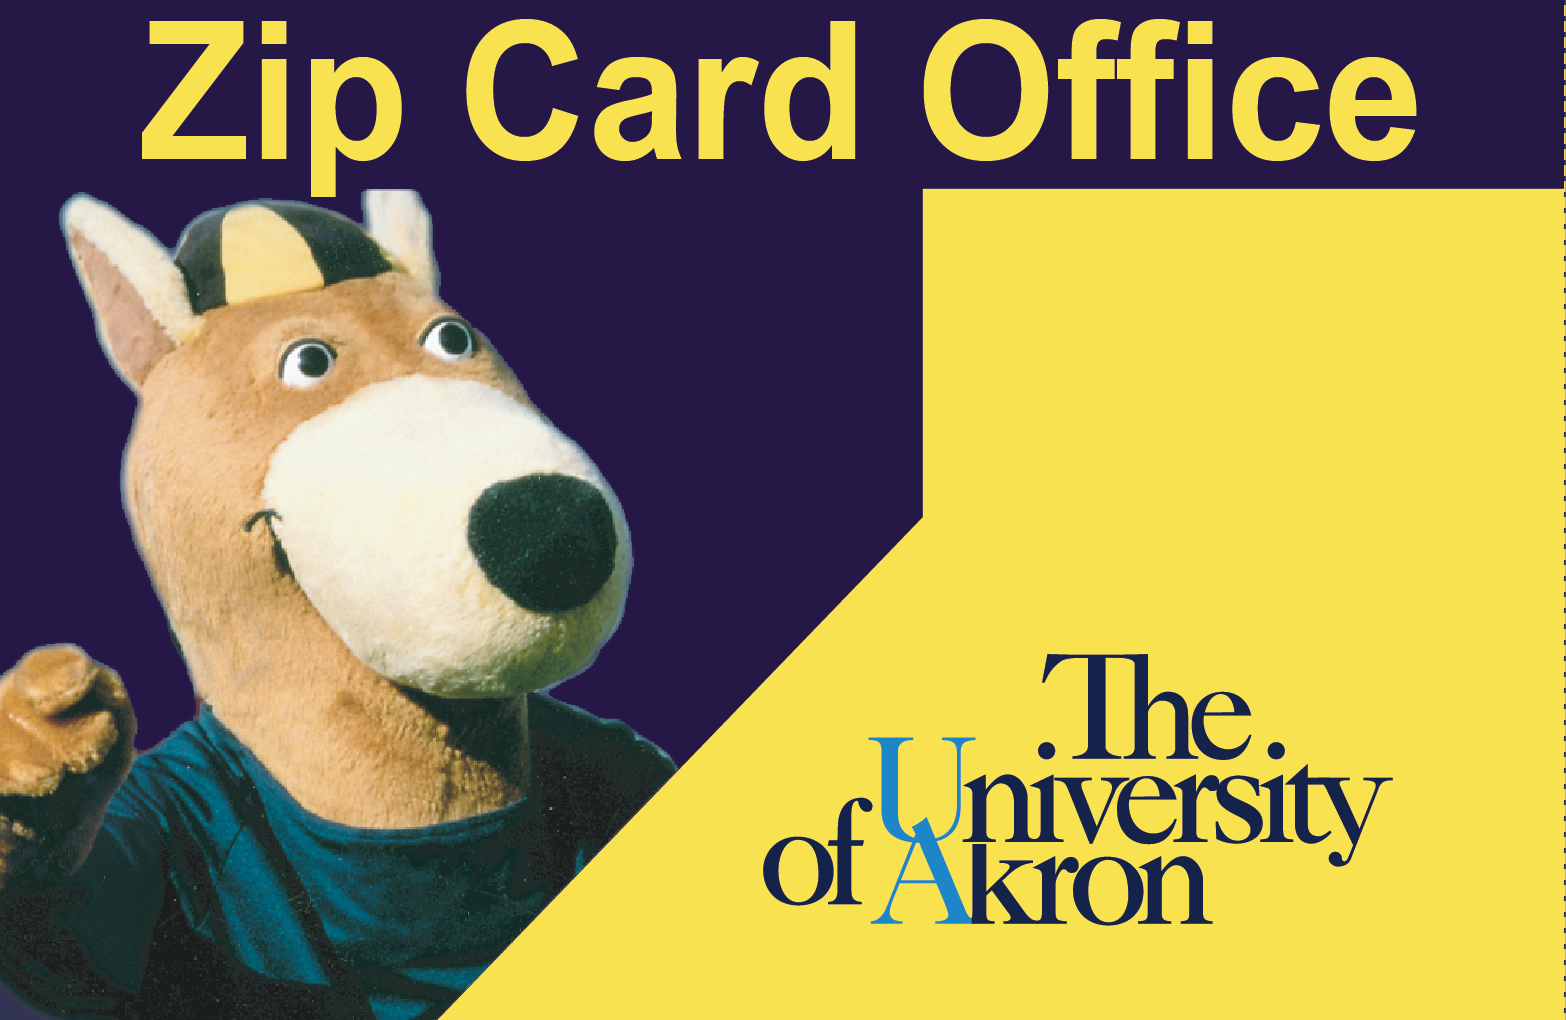 Zip Card, your University of Akron ID